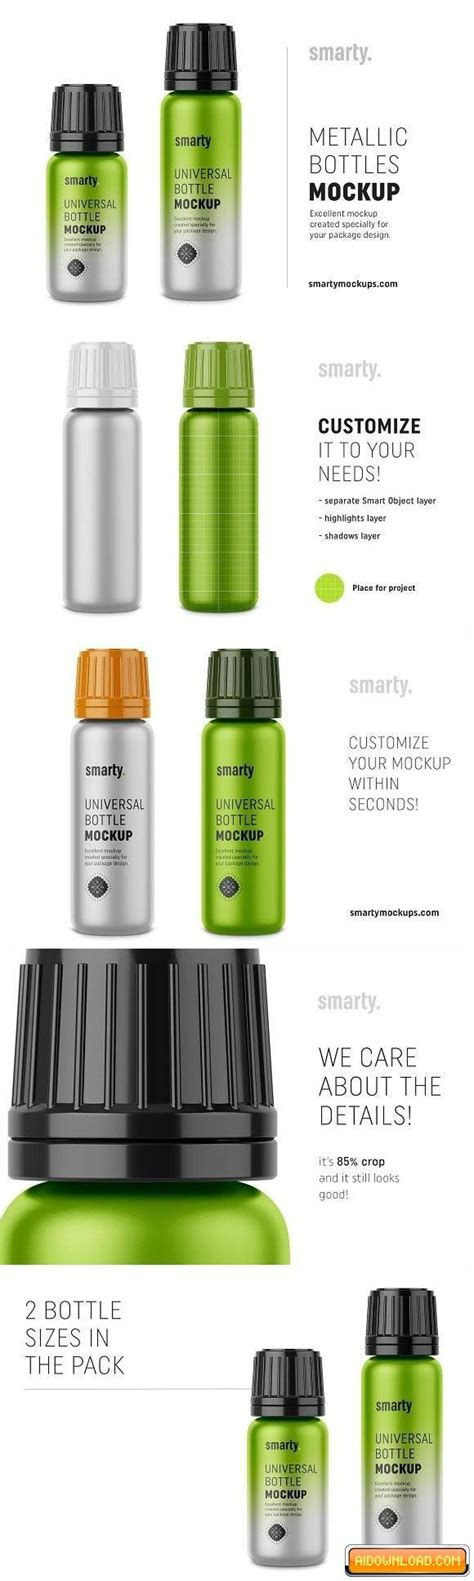 The item is presented in a front view. Metallic bottle mockups | Free Graphic Templates, Fonts ...